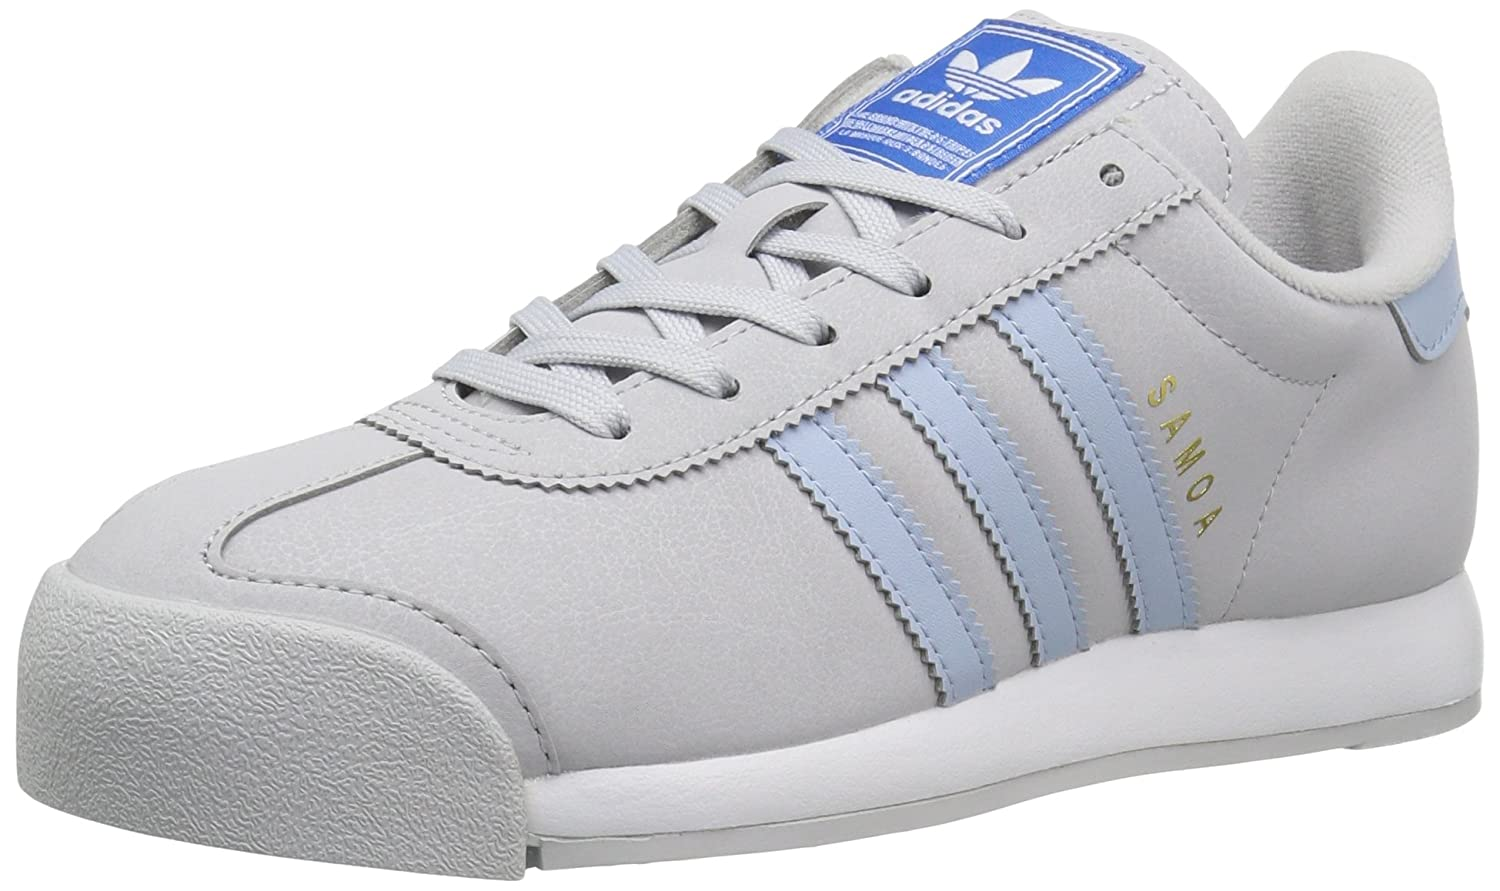 adidas Originals Women's Samoa W Sneaker B01HNEH7II 10 M US|Lgh Solid Grey/Easy Blue/White